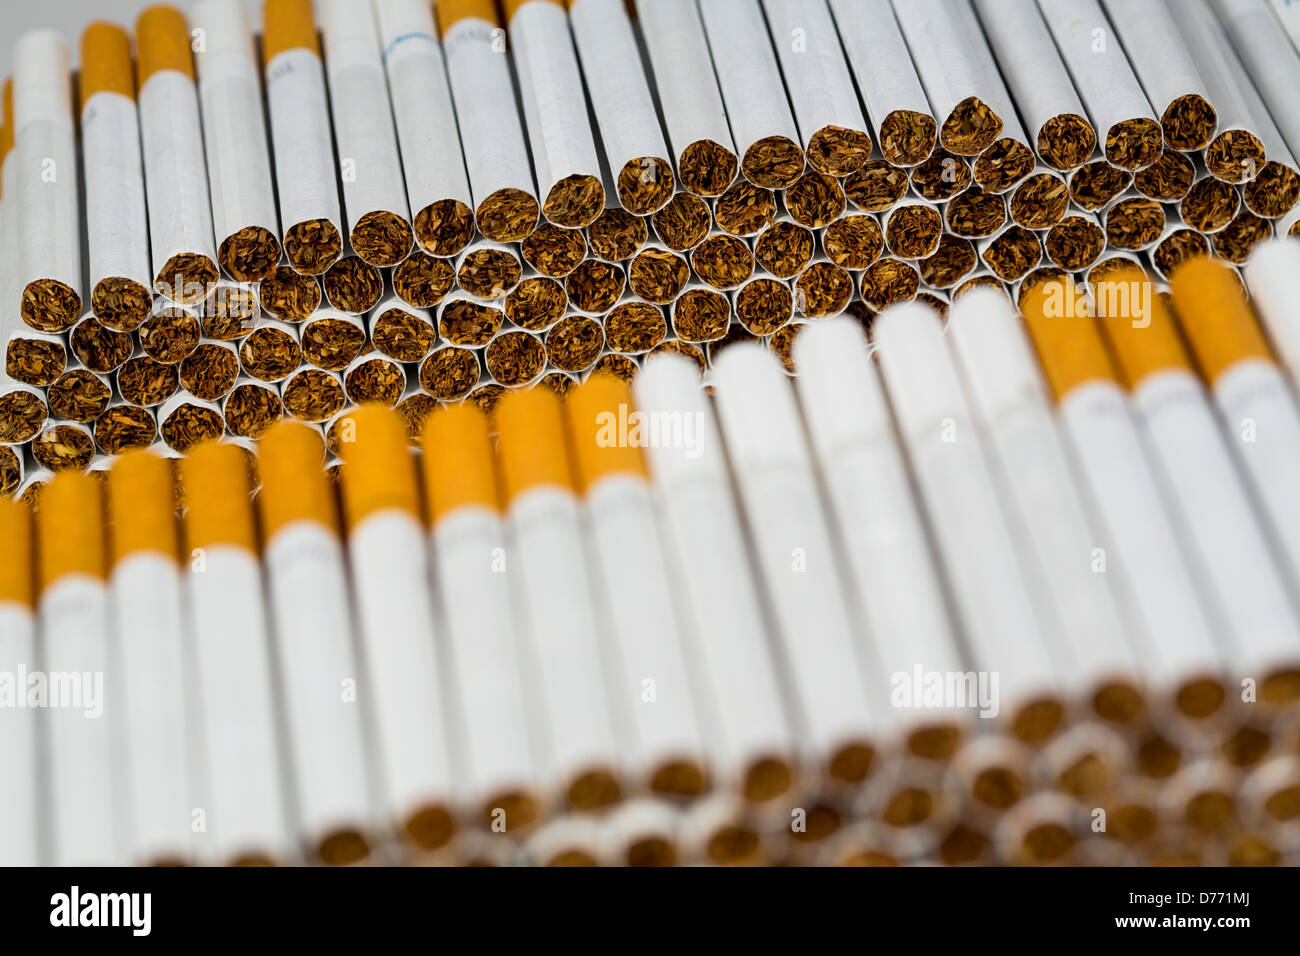 Buy discount cigarettes More online